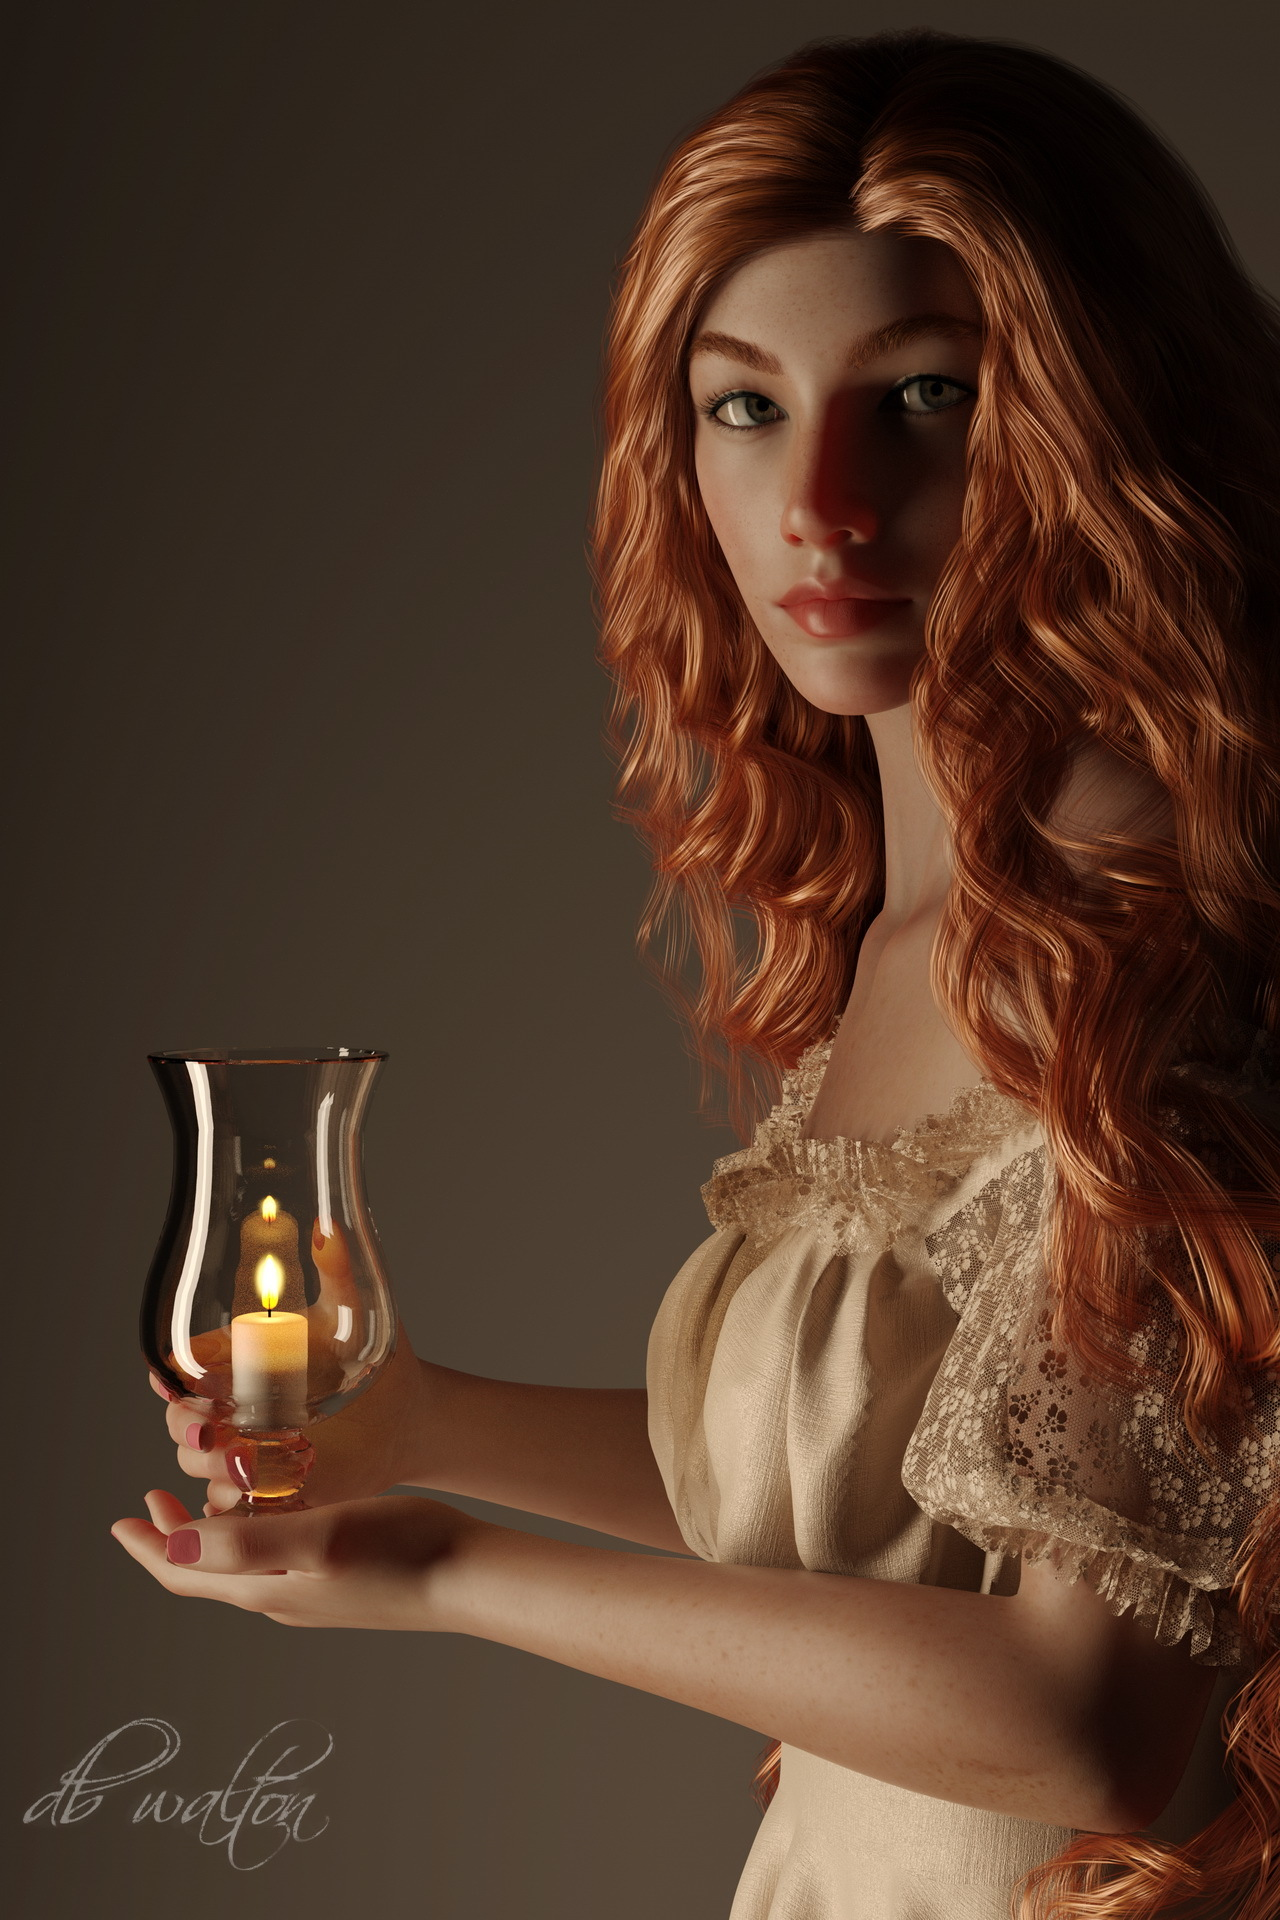 Candle Bearer 3 by dbwalton